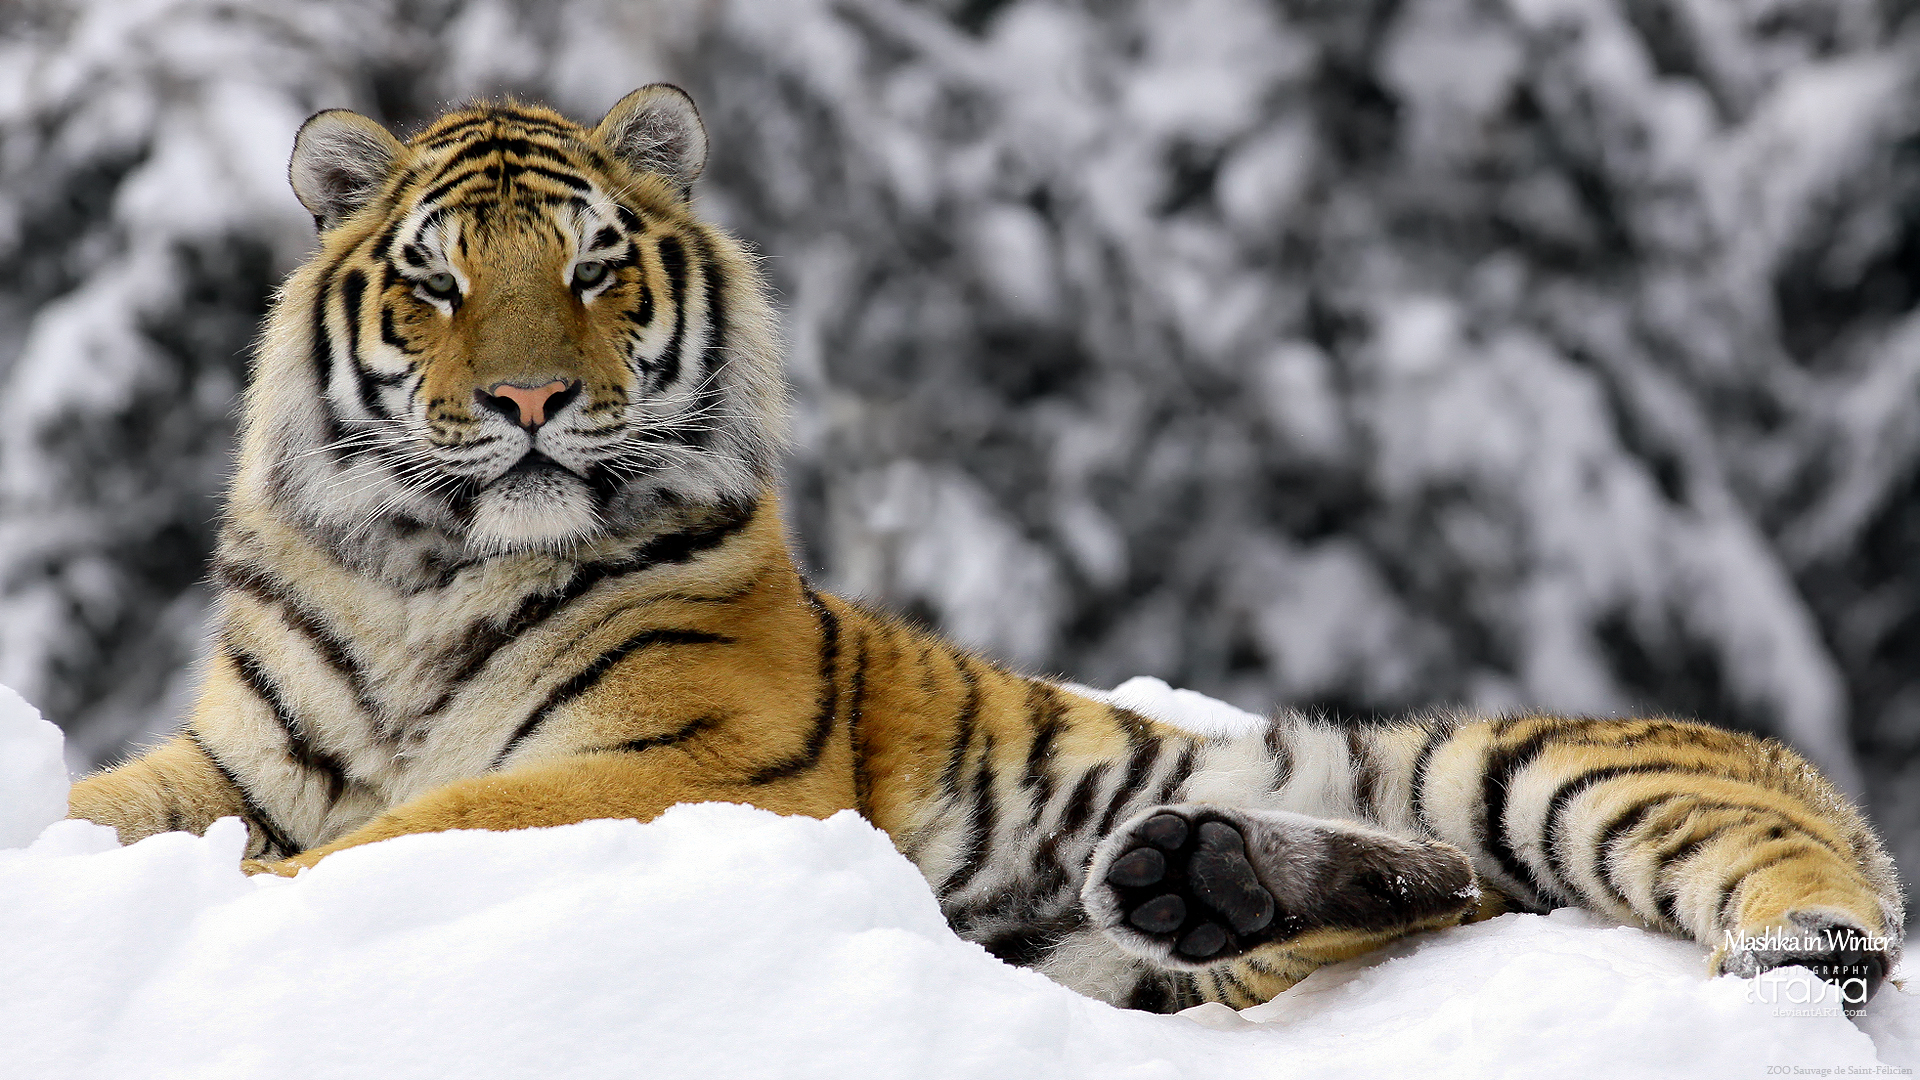 Tiger in Winter 387.92 Kb